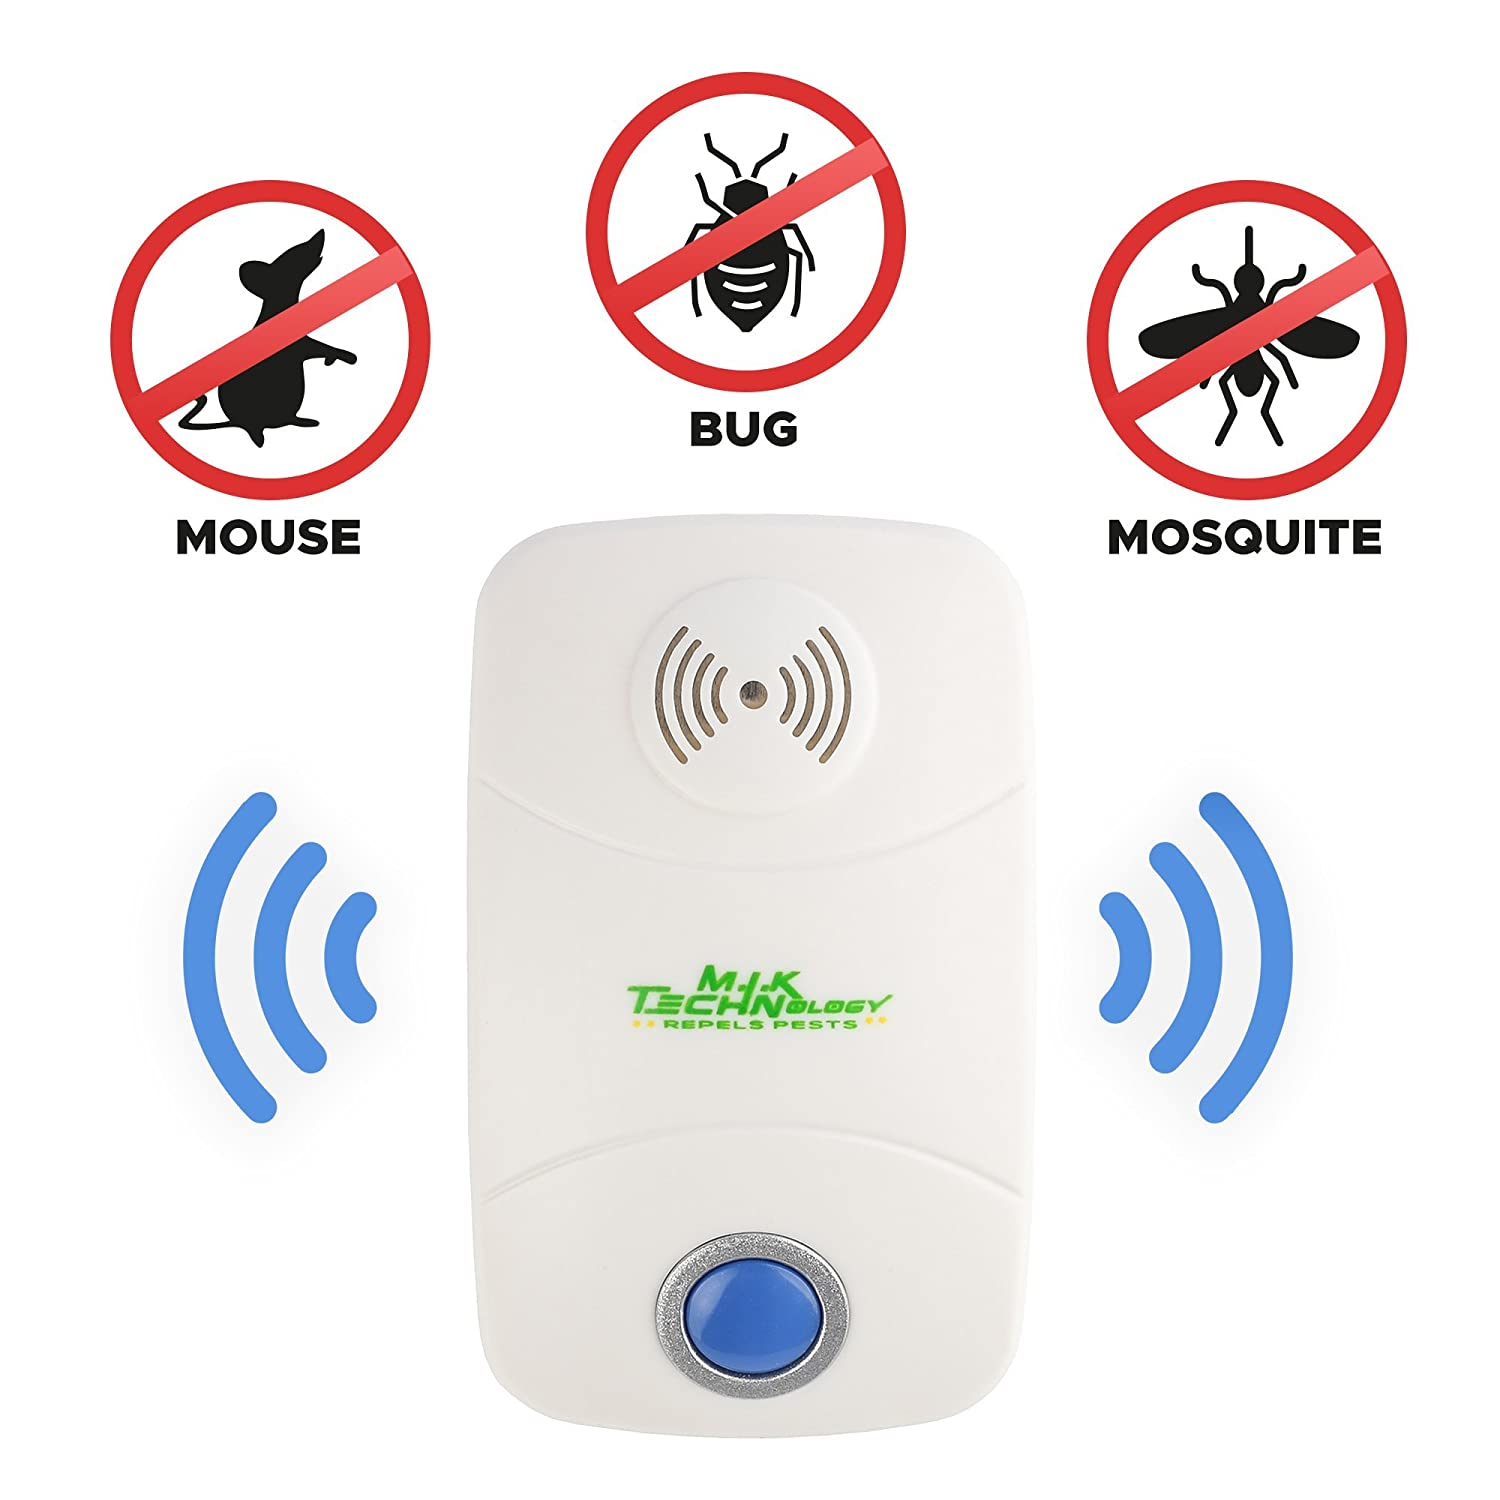 Ultrasonic Pest Repeller Pack Of 2 2018 Upgraded Mosquito Repellent Circuitbest Repellentindoor Control Electronic Plug In For Indoor And Outdoor Use Fight Insects Bug